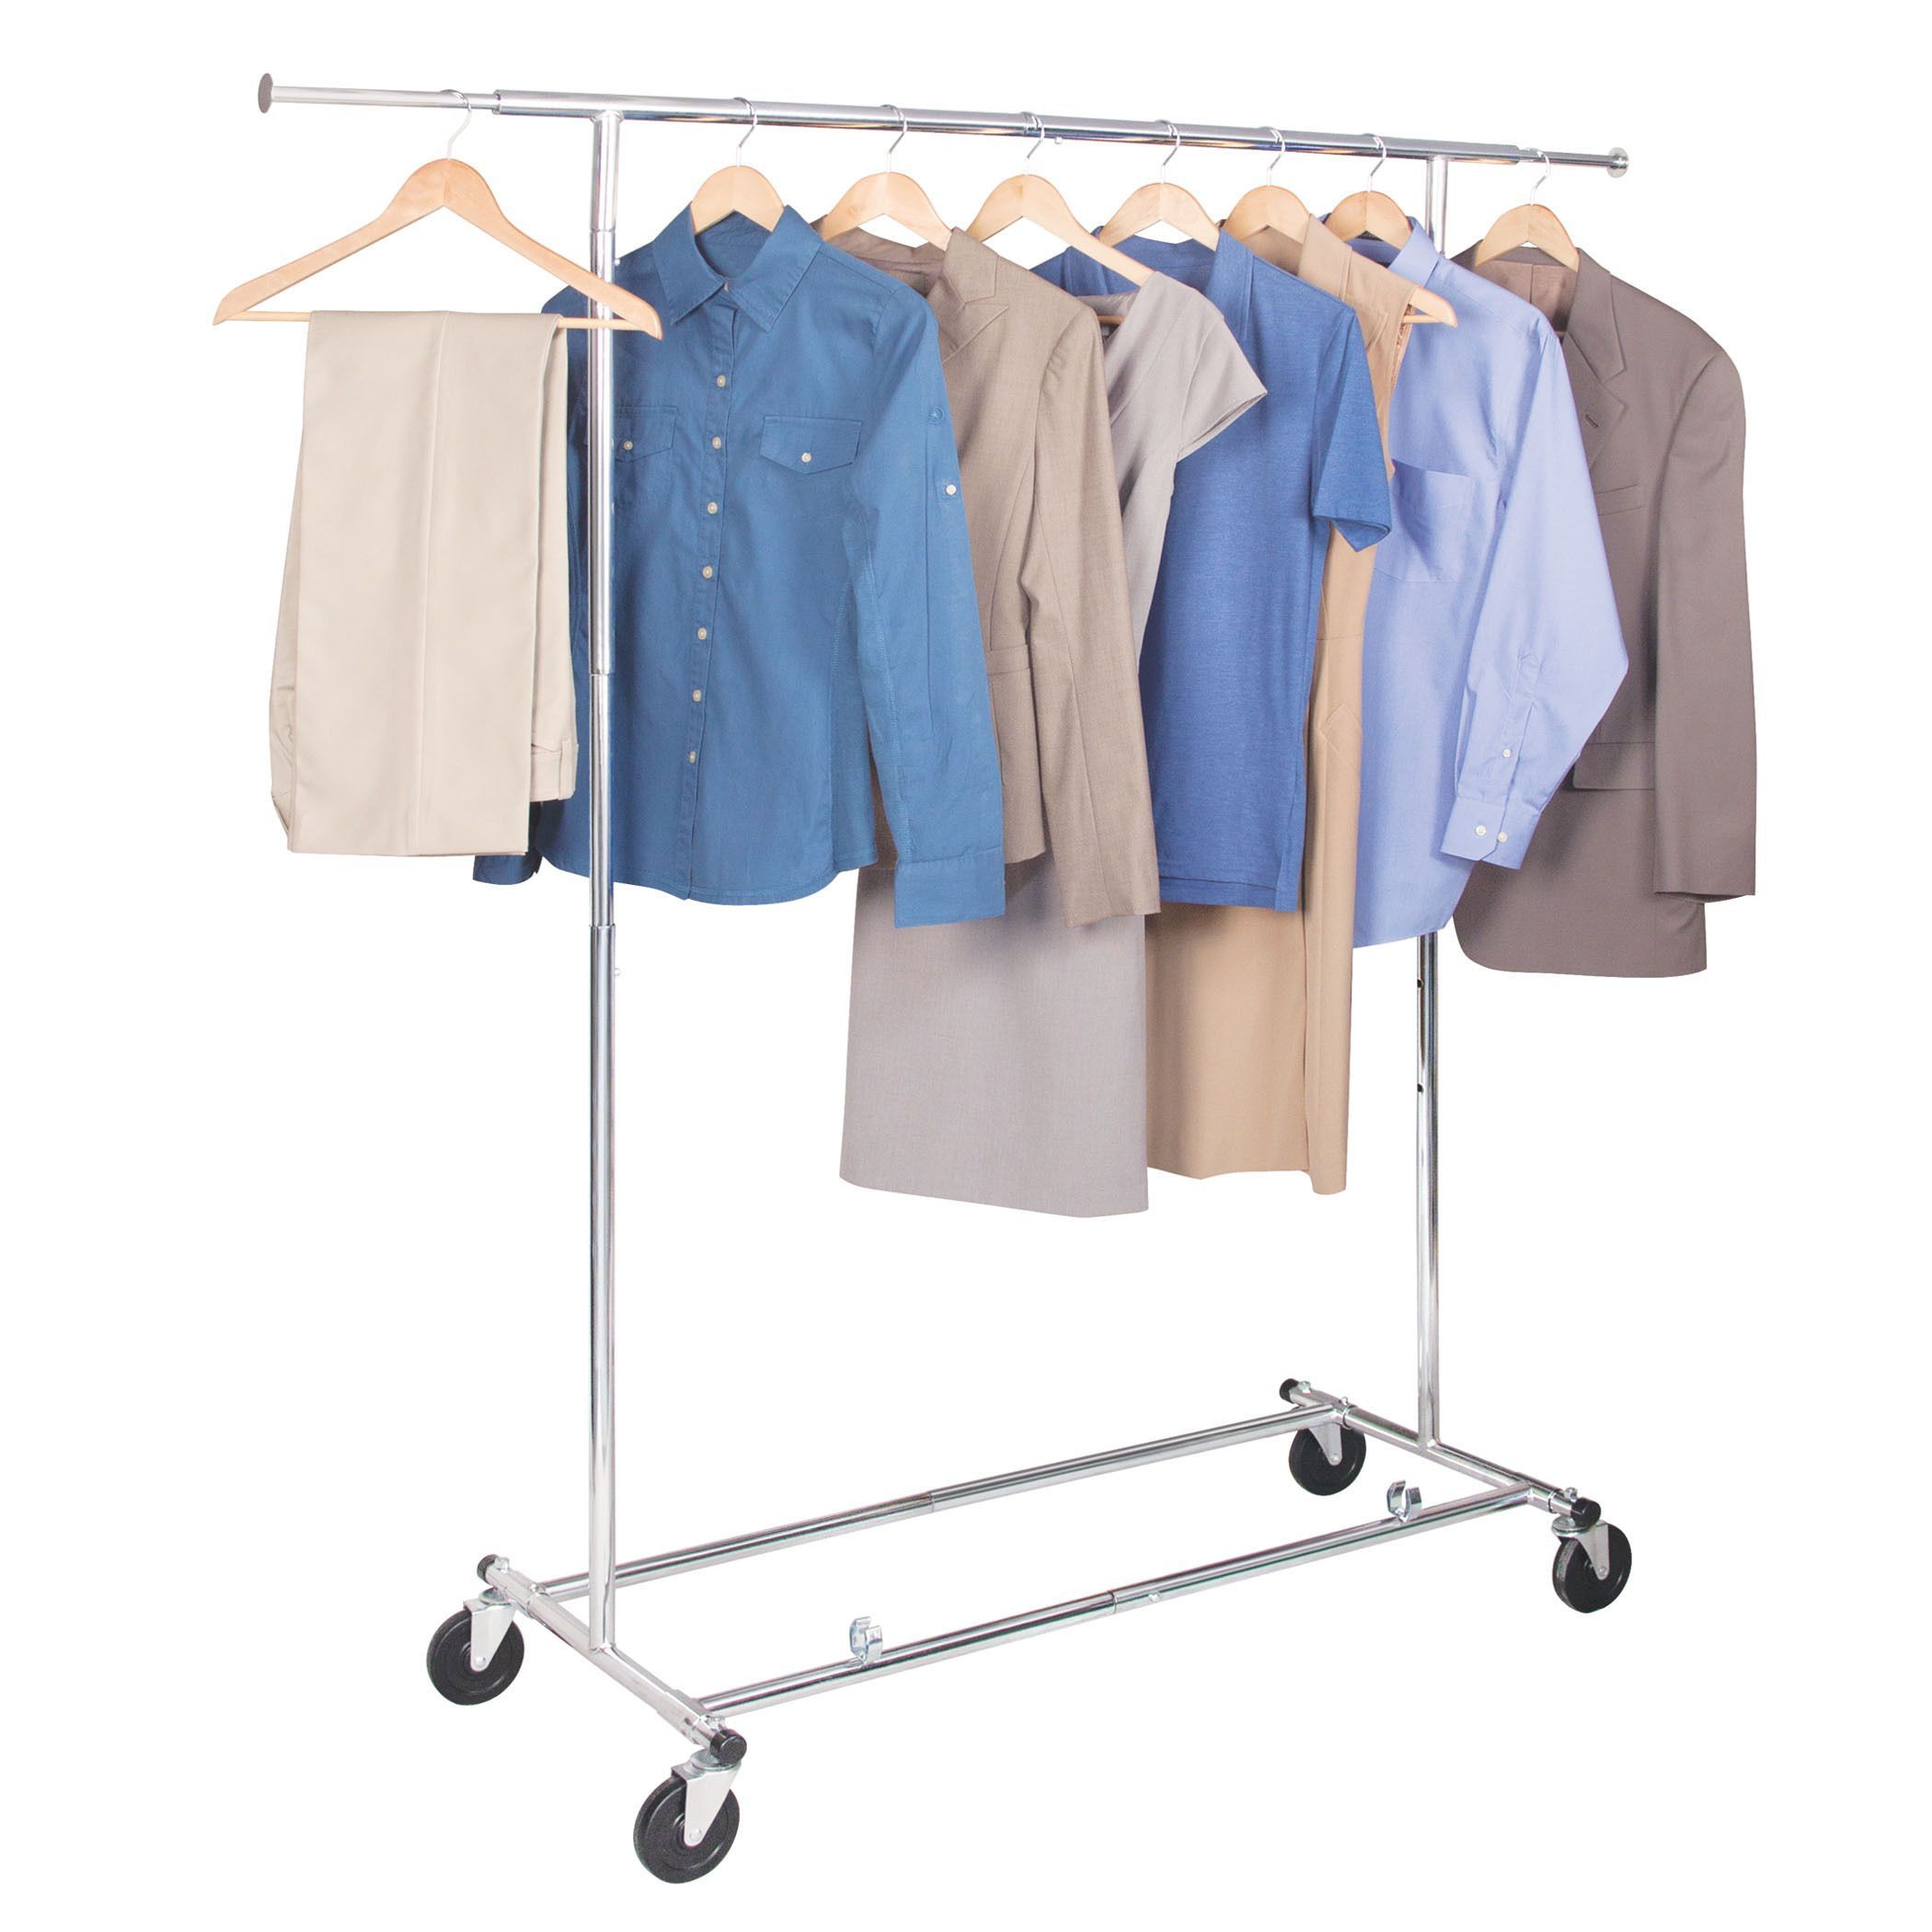 Portable And Expandable Garment Rack In Black Chrome 18 Months Richards Homewares Chrome Freestanding Commercial Storage Garment